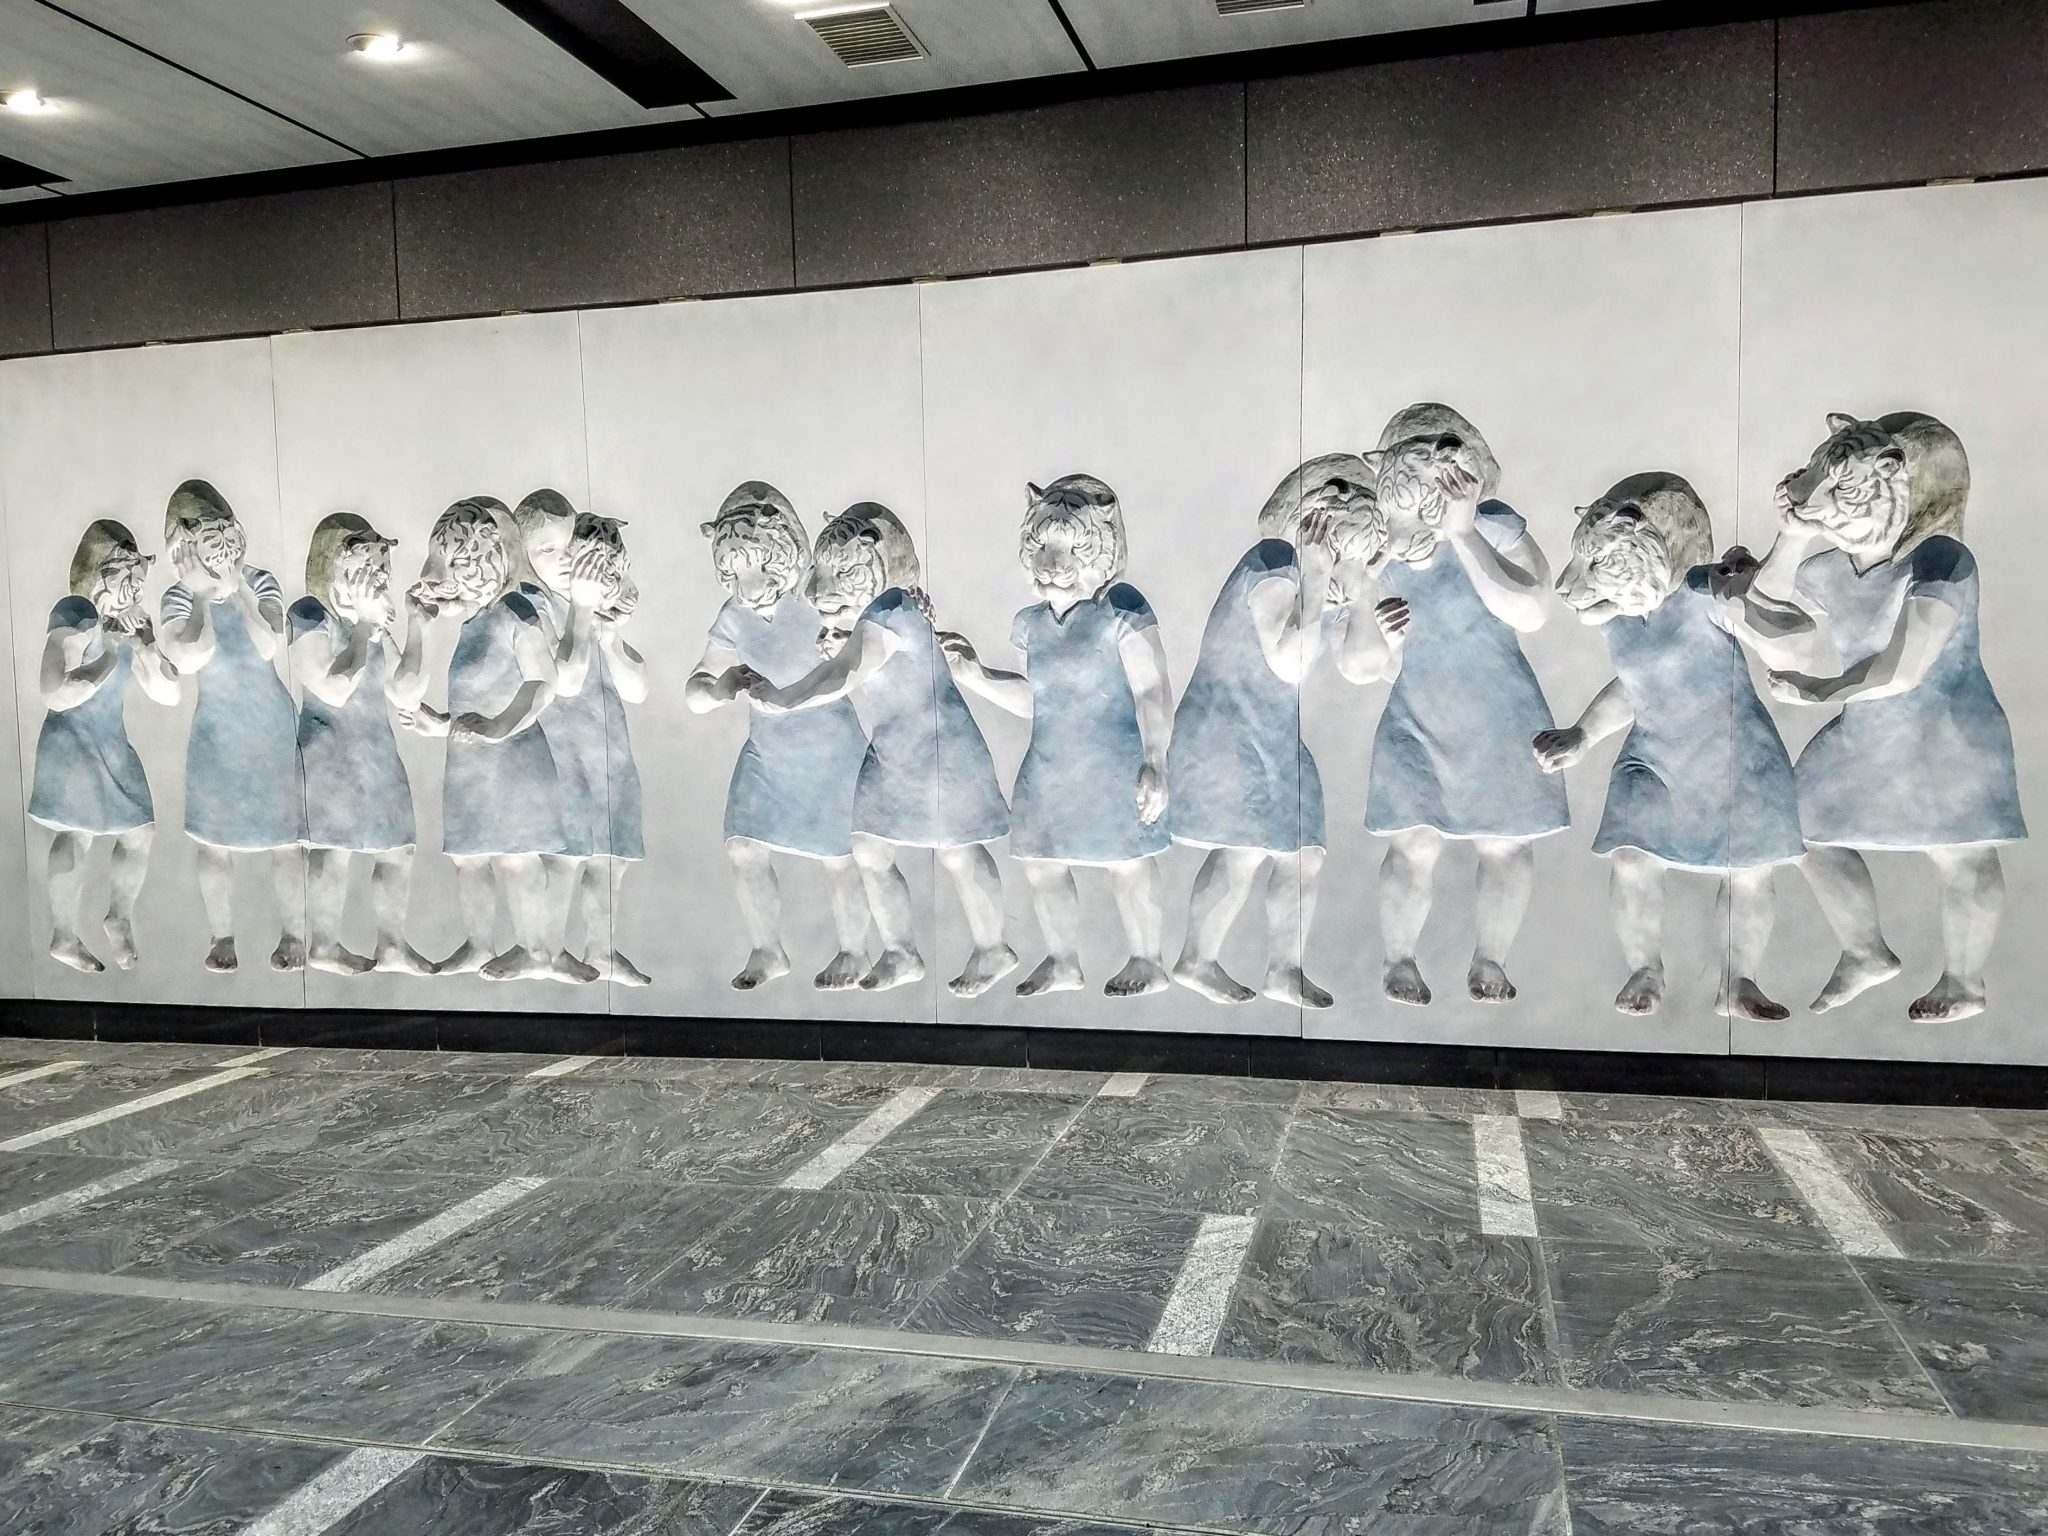 Toranomon Station Mural 'The White Tigers are watching' by Michiko Nakatani